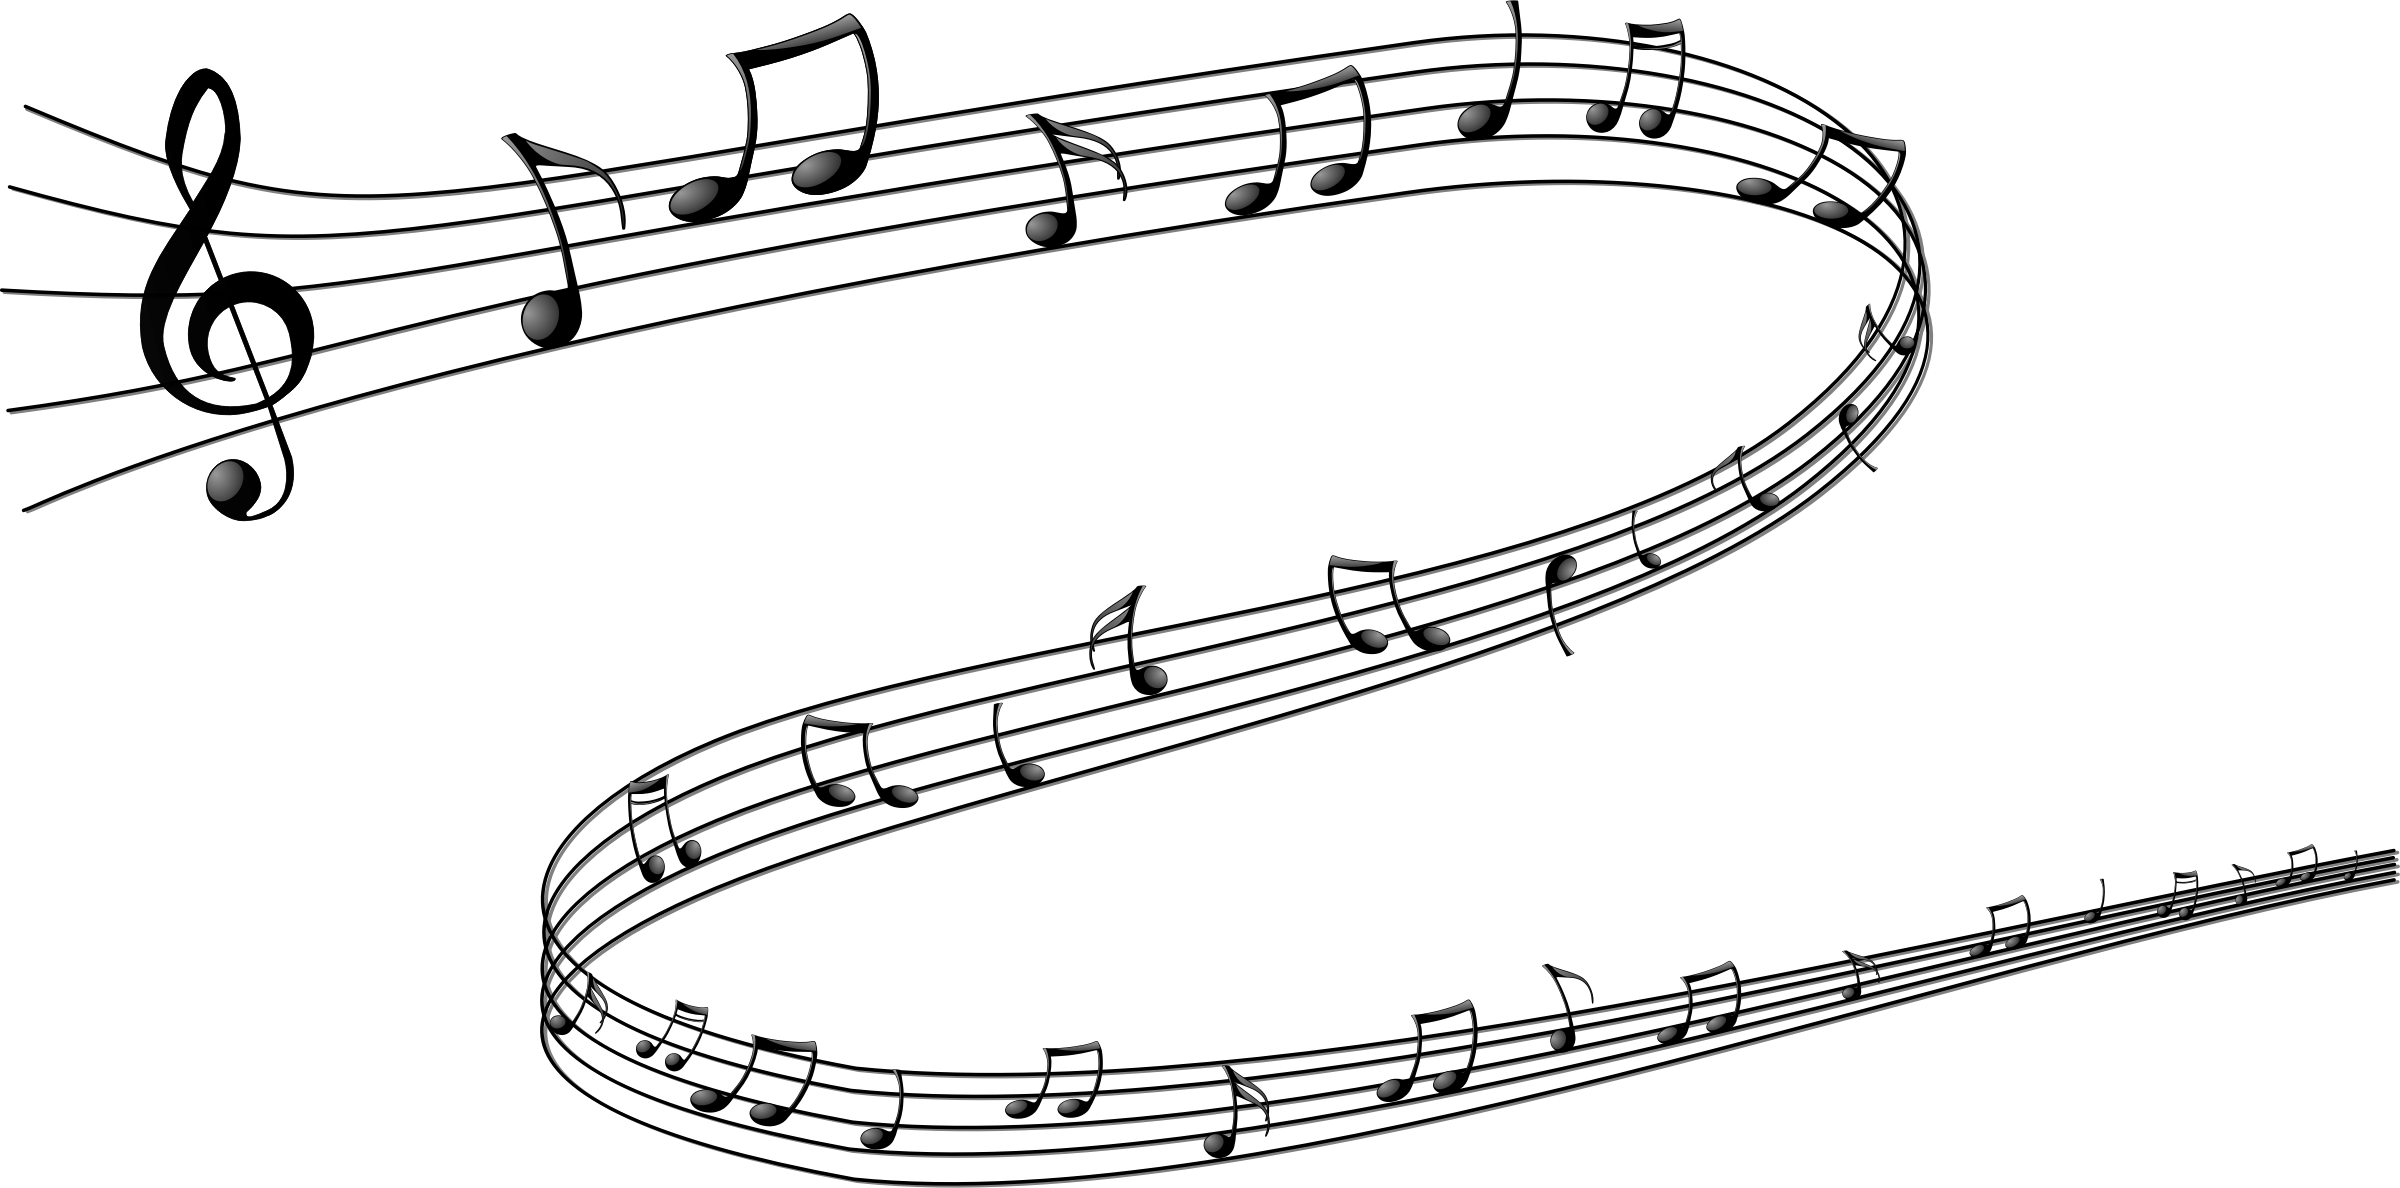 Christmas musical notes clipart svg freeuse library Musical Notes PNG Transparent Musical Notes.PNG Images. | PlusPNG svg freeuse library